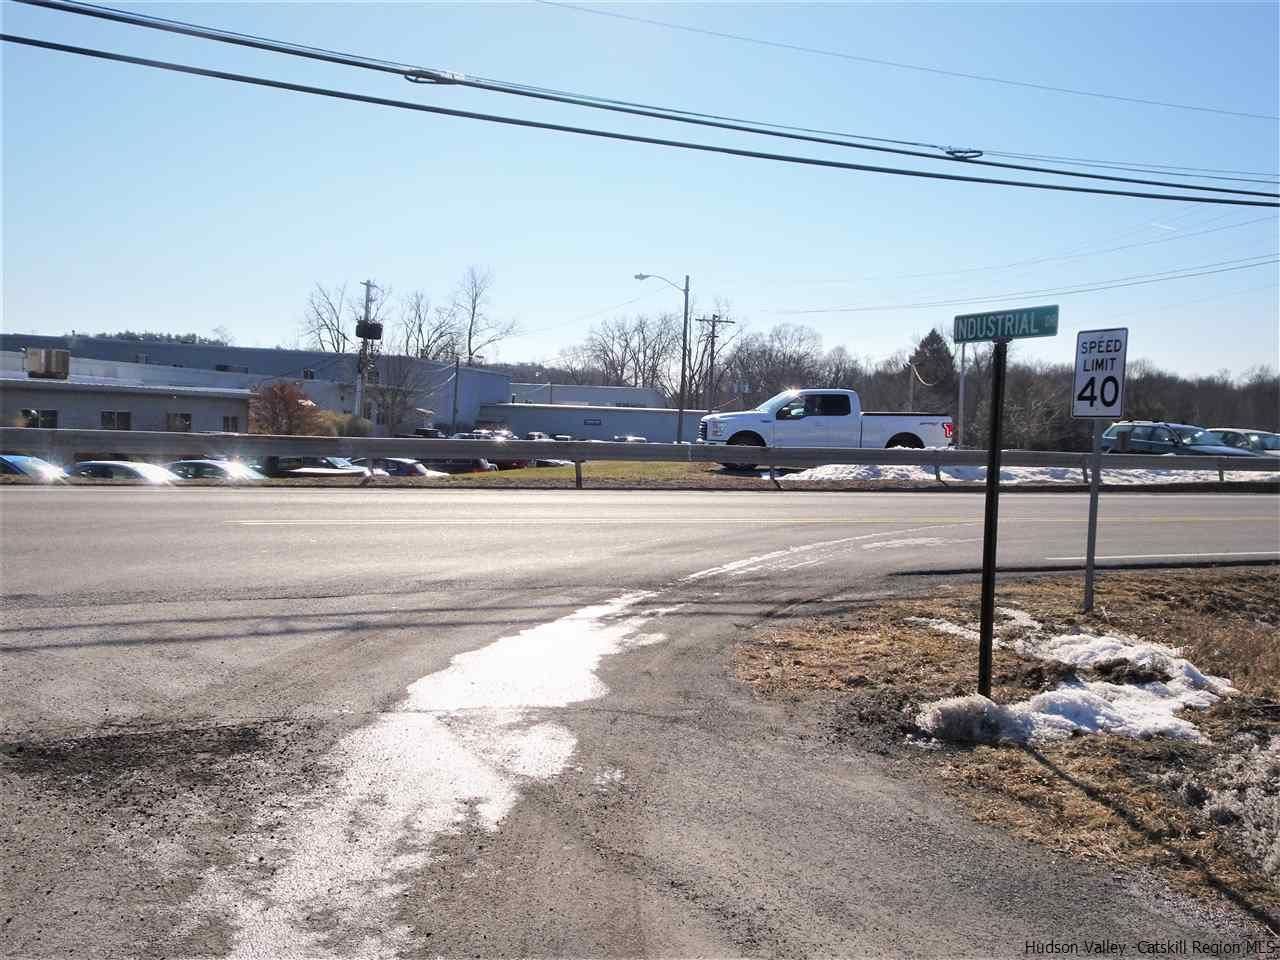 Additional photo for property listing at 54 Industrial Drive 54 Industrial Drive Saugerties, New York 12477 United States